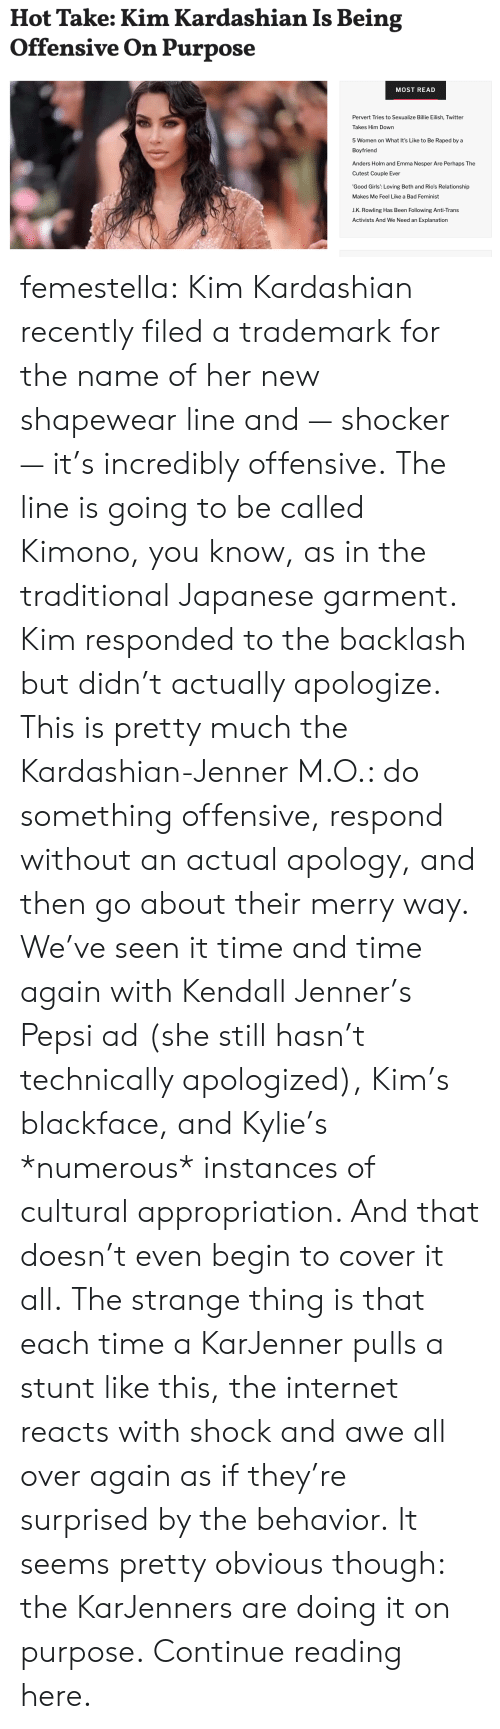 Kendall Jenner: Hot Take: Kim Kardashian Is Being  Offensive On Purpose  MOST READ  Pervert Tries to Sexualize Billie Eilish, Twitter  Takes Him Down  5 Women on What It's Like to Be Raped by a  Boyfriend  Anders Holm and Emma Nesper Are Perhaps The  Cutest Couple Ever  'Good Girls': Loving Beth and Rio's Relationship  Makes Me Feel Like a Bad Feminist  J.K. Rowling Has Been Following Anti-Trans  Activists And We Need an Explanation femestella: Kim Kardashian recently filed a trademark for the name of her new shapewear line and — shocker — it's incredibly offensive. The line is going to be called Kimono, you know, as in the traditional Japanese garment.  Kim responded to the backlash but didn't actually apologize. This is pretty much the Kardashian-Jenner M.O.: do something offensive, respond without an actual apology, and then go about their merry way. We've seen it time and time again with Kendall Jenner's Pepsi ad (she still hasn't technically apologized), Kim's blackface, and Kylie's *numerous* instances of cultural appropriation. And that doesn't even begin to cover it all. The strange thing is that each time a KarJenner pulls a stunt like this, the internet reacts with shock and awe all over again as if they're surprised by the behavior. It seems pretty obvious though: the KarJenners are doing it on purpose. Continue reading here.